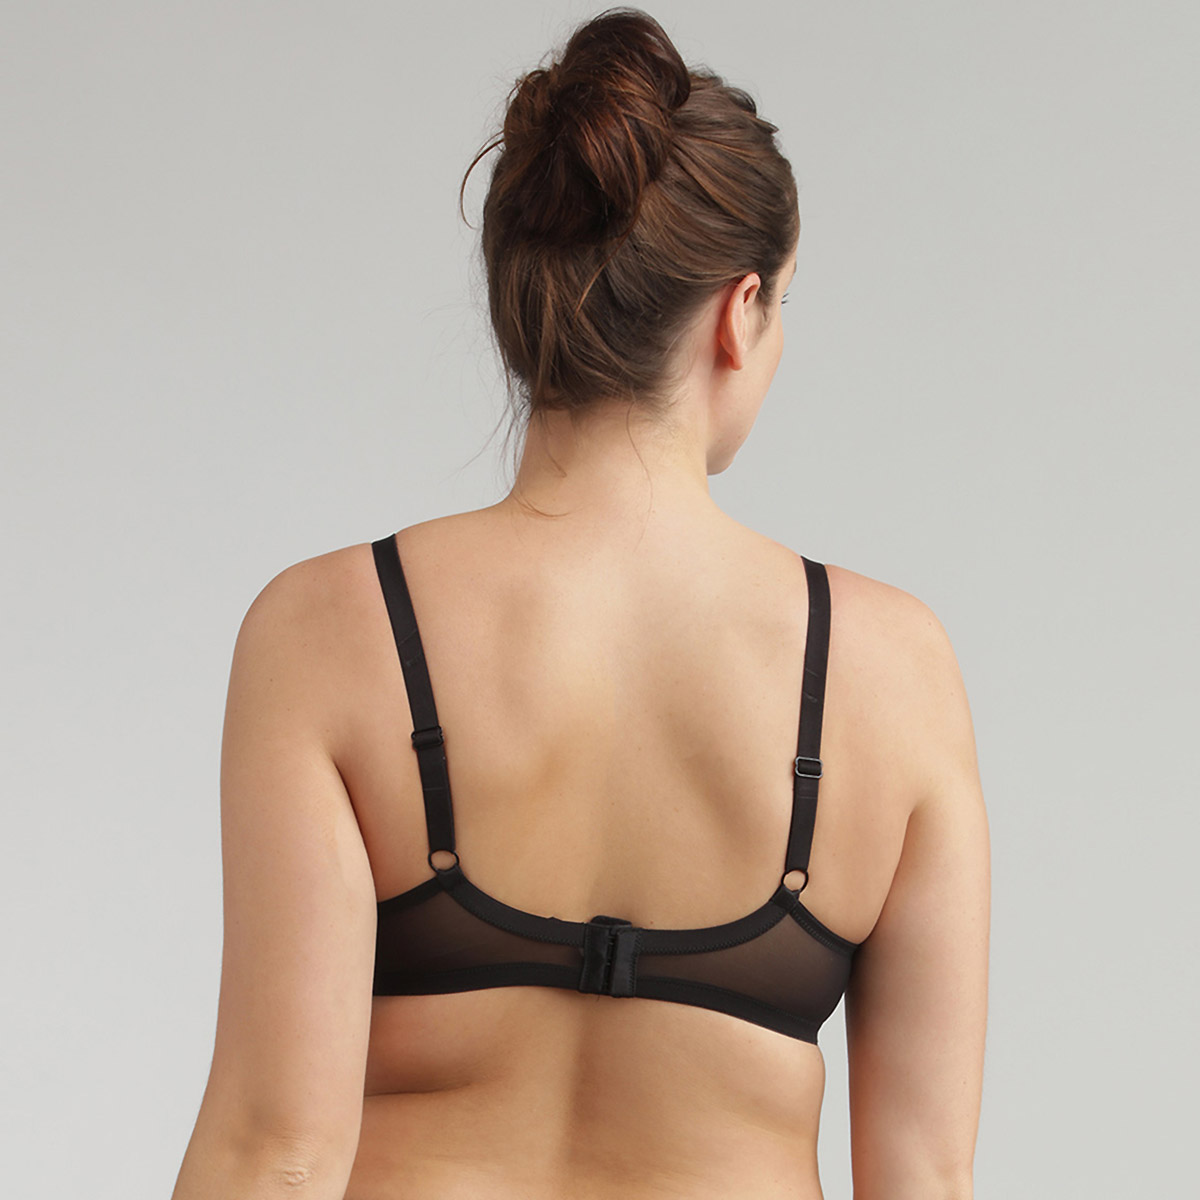 Underwired Lace Bra in Black Essential Elegance, , PLAYTEX